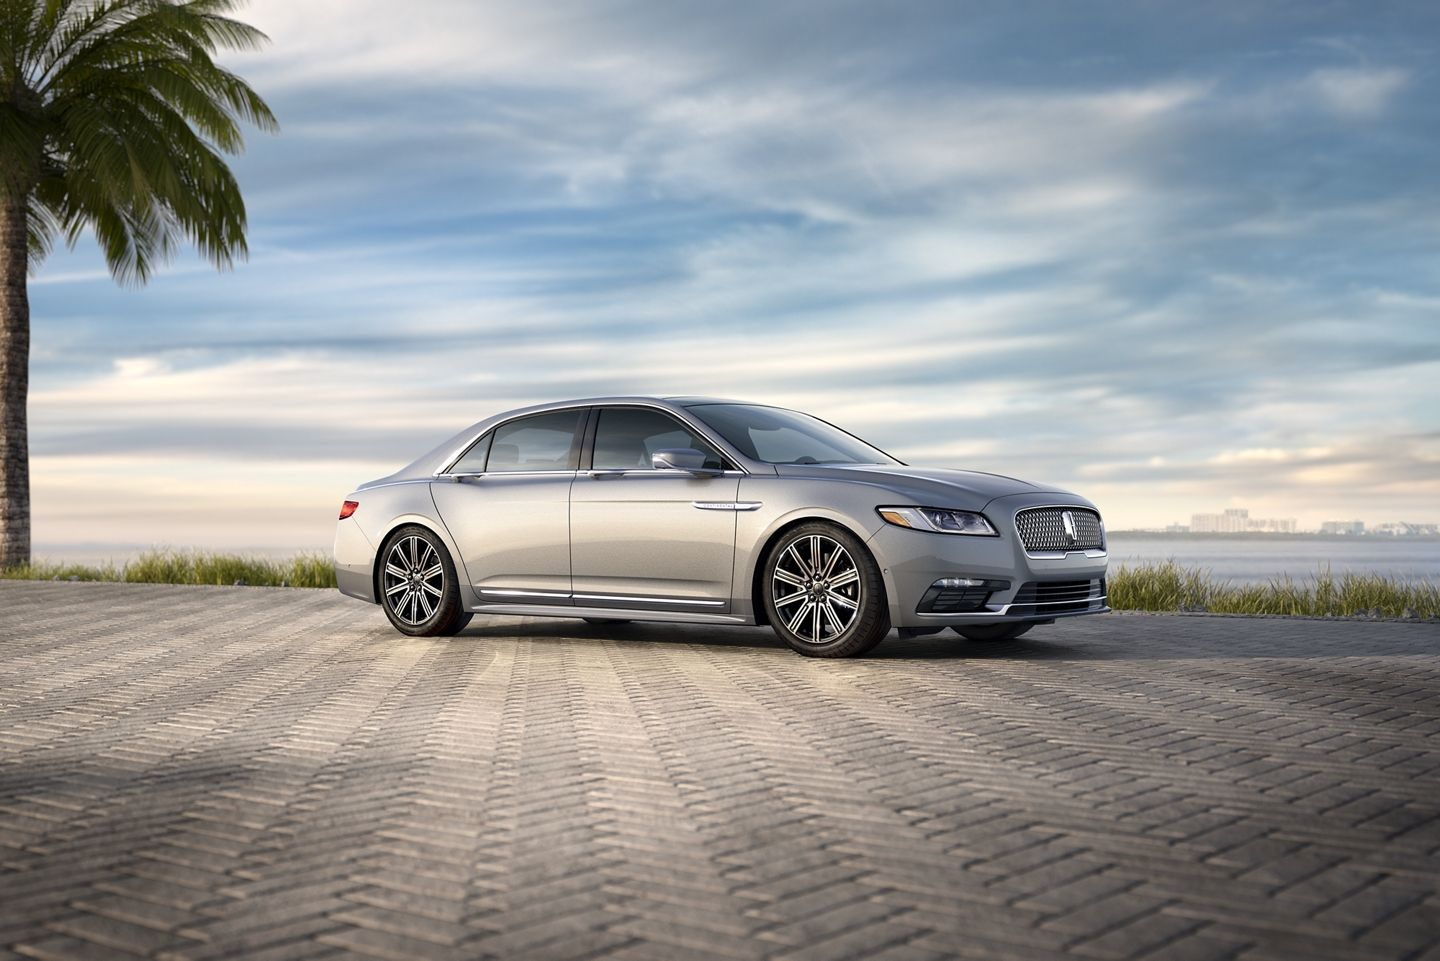 2020 lincoln continental review pricing and specs 2020 lincoln continental review pricing and specs